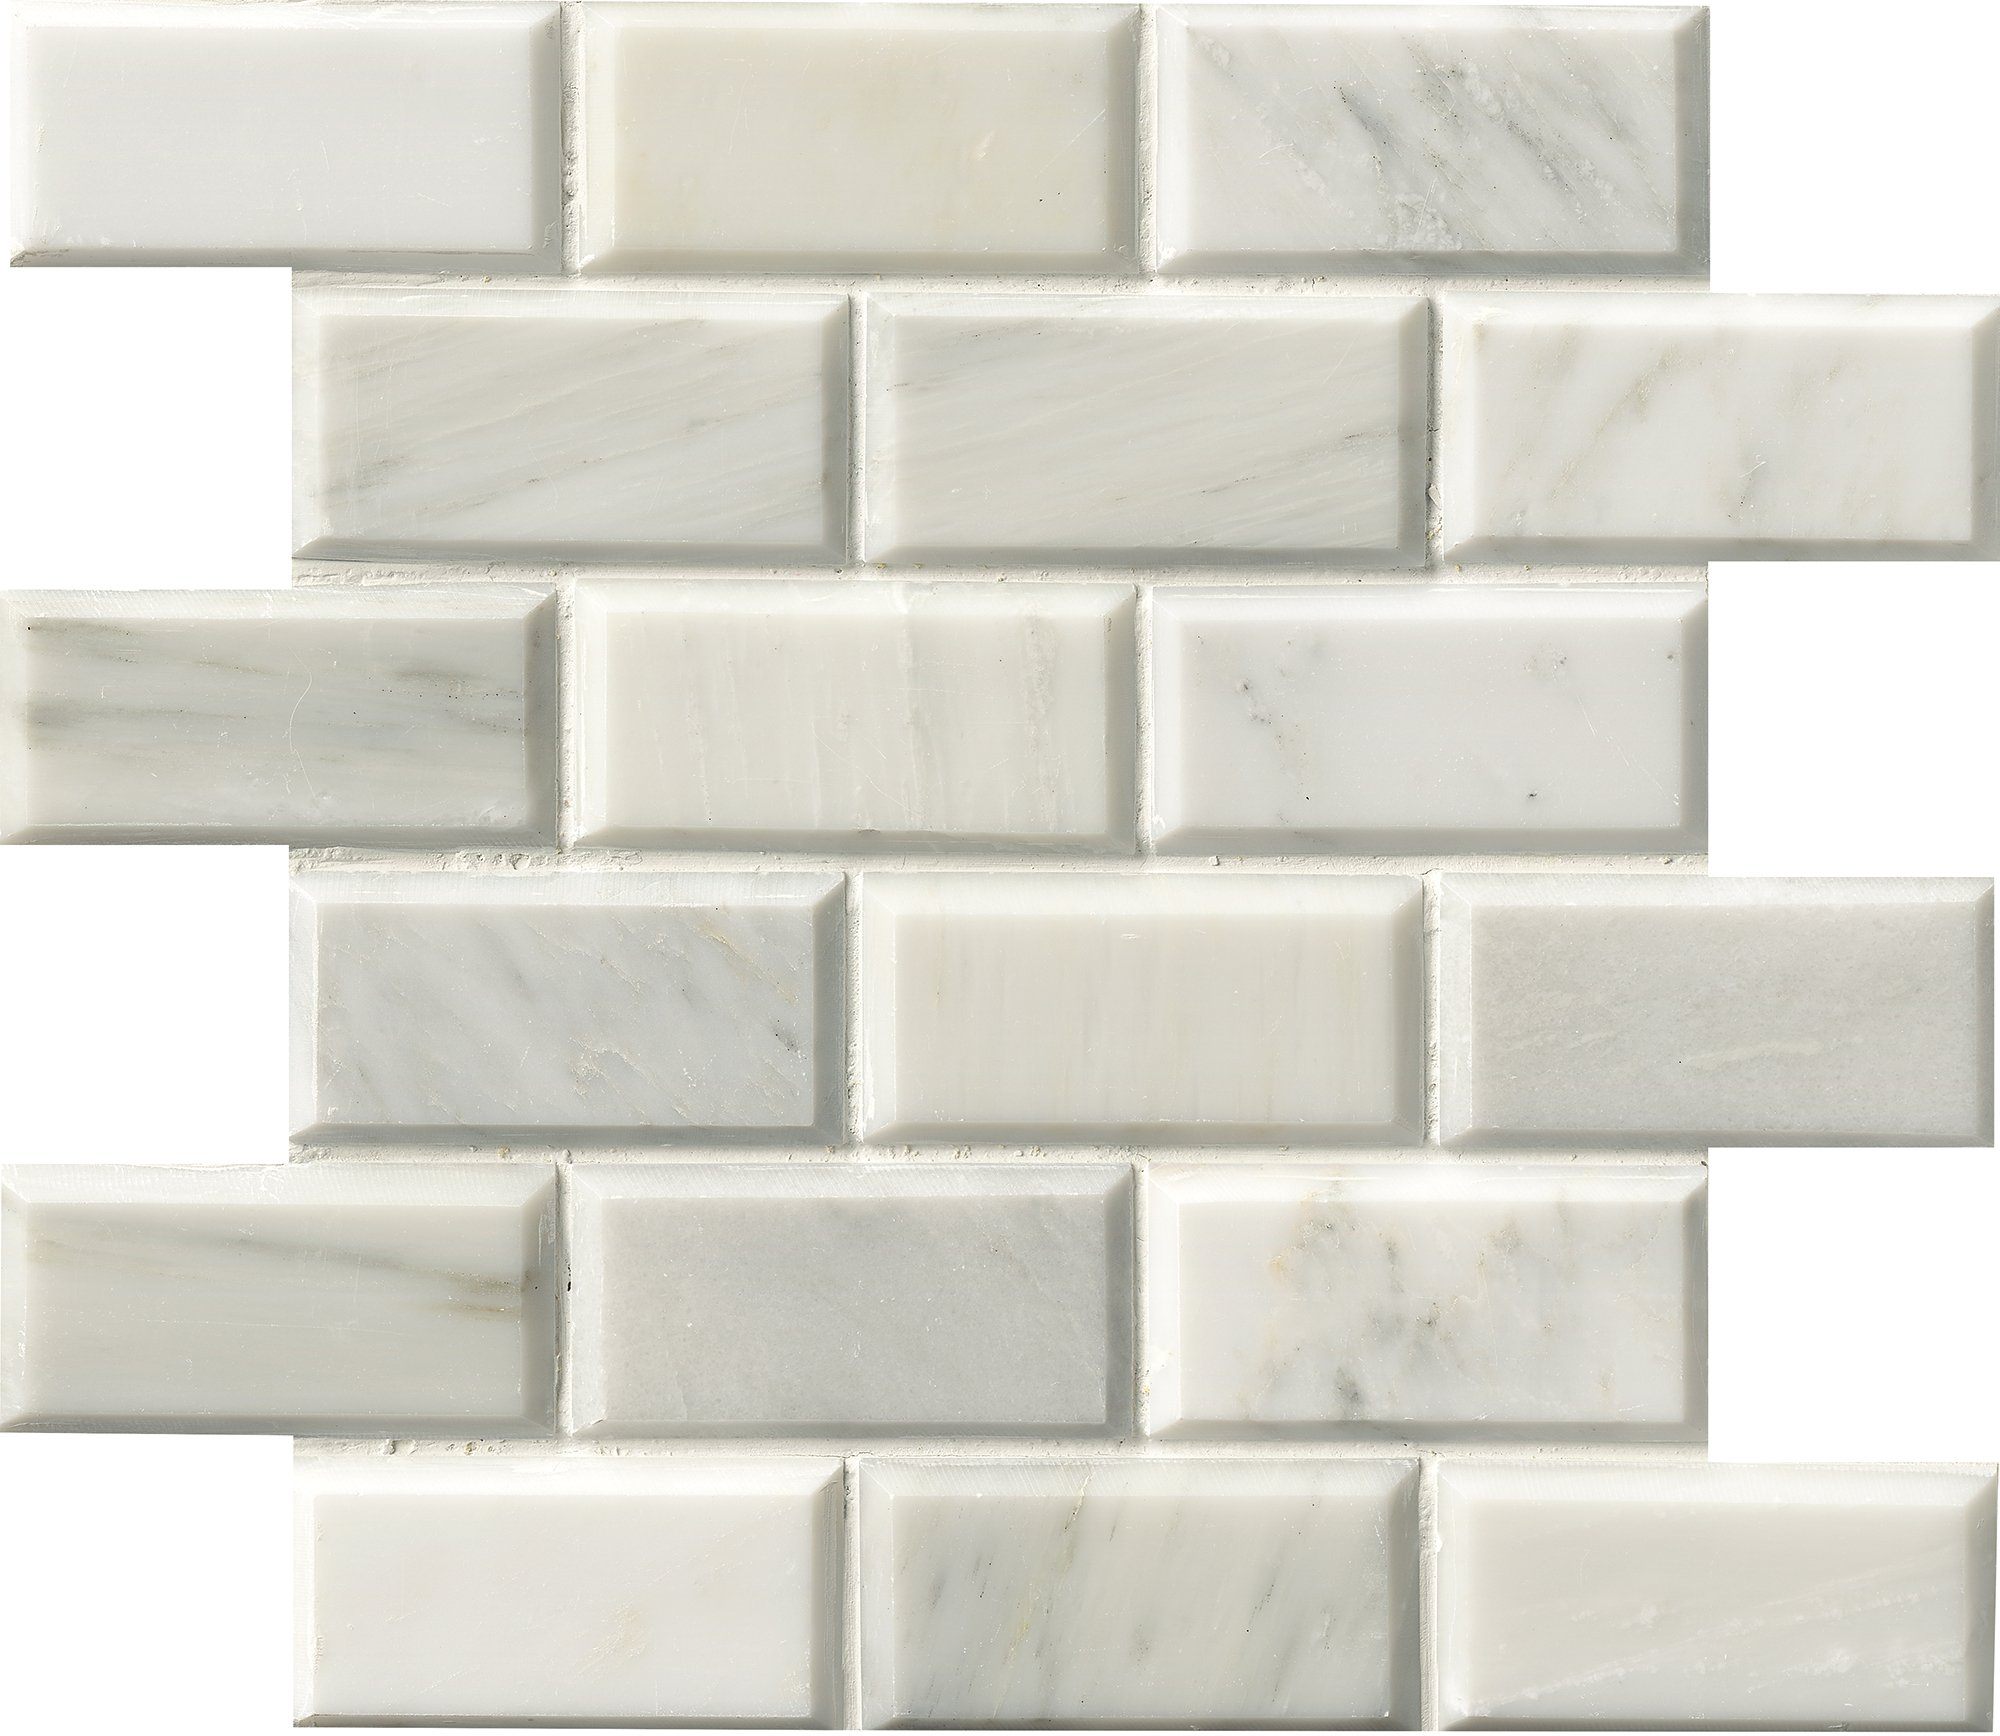 M S International Arabescato Carrara 12 In. X 12 In. Polished Beveled Marble Mesh-Mounted Mosaic Floor And Wall Tile, (10 sq. ft., 10 pieces per case)